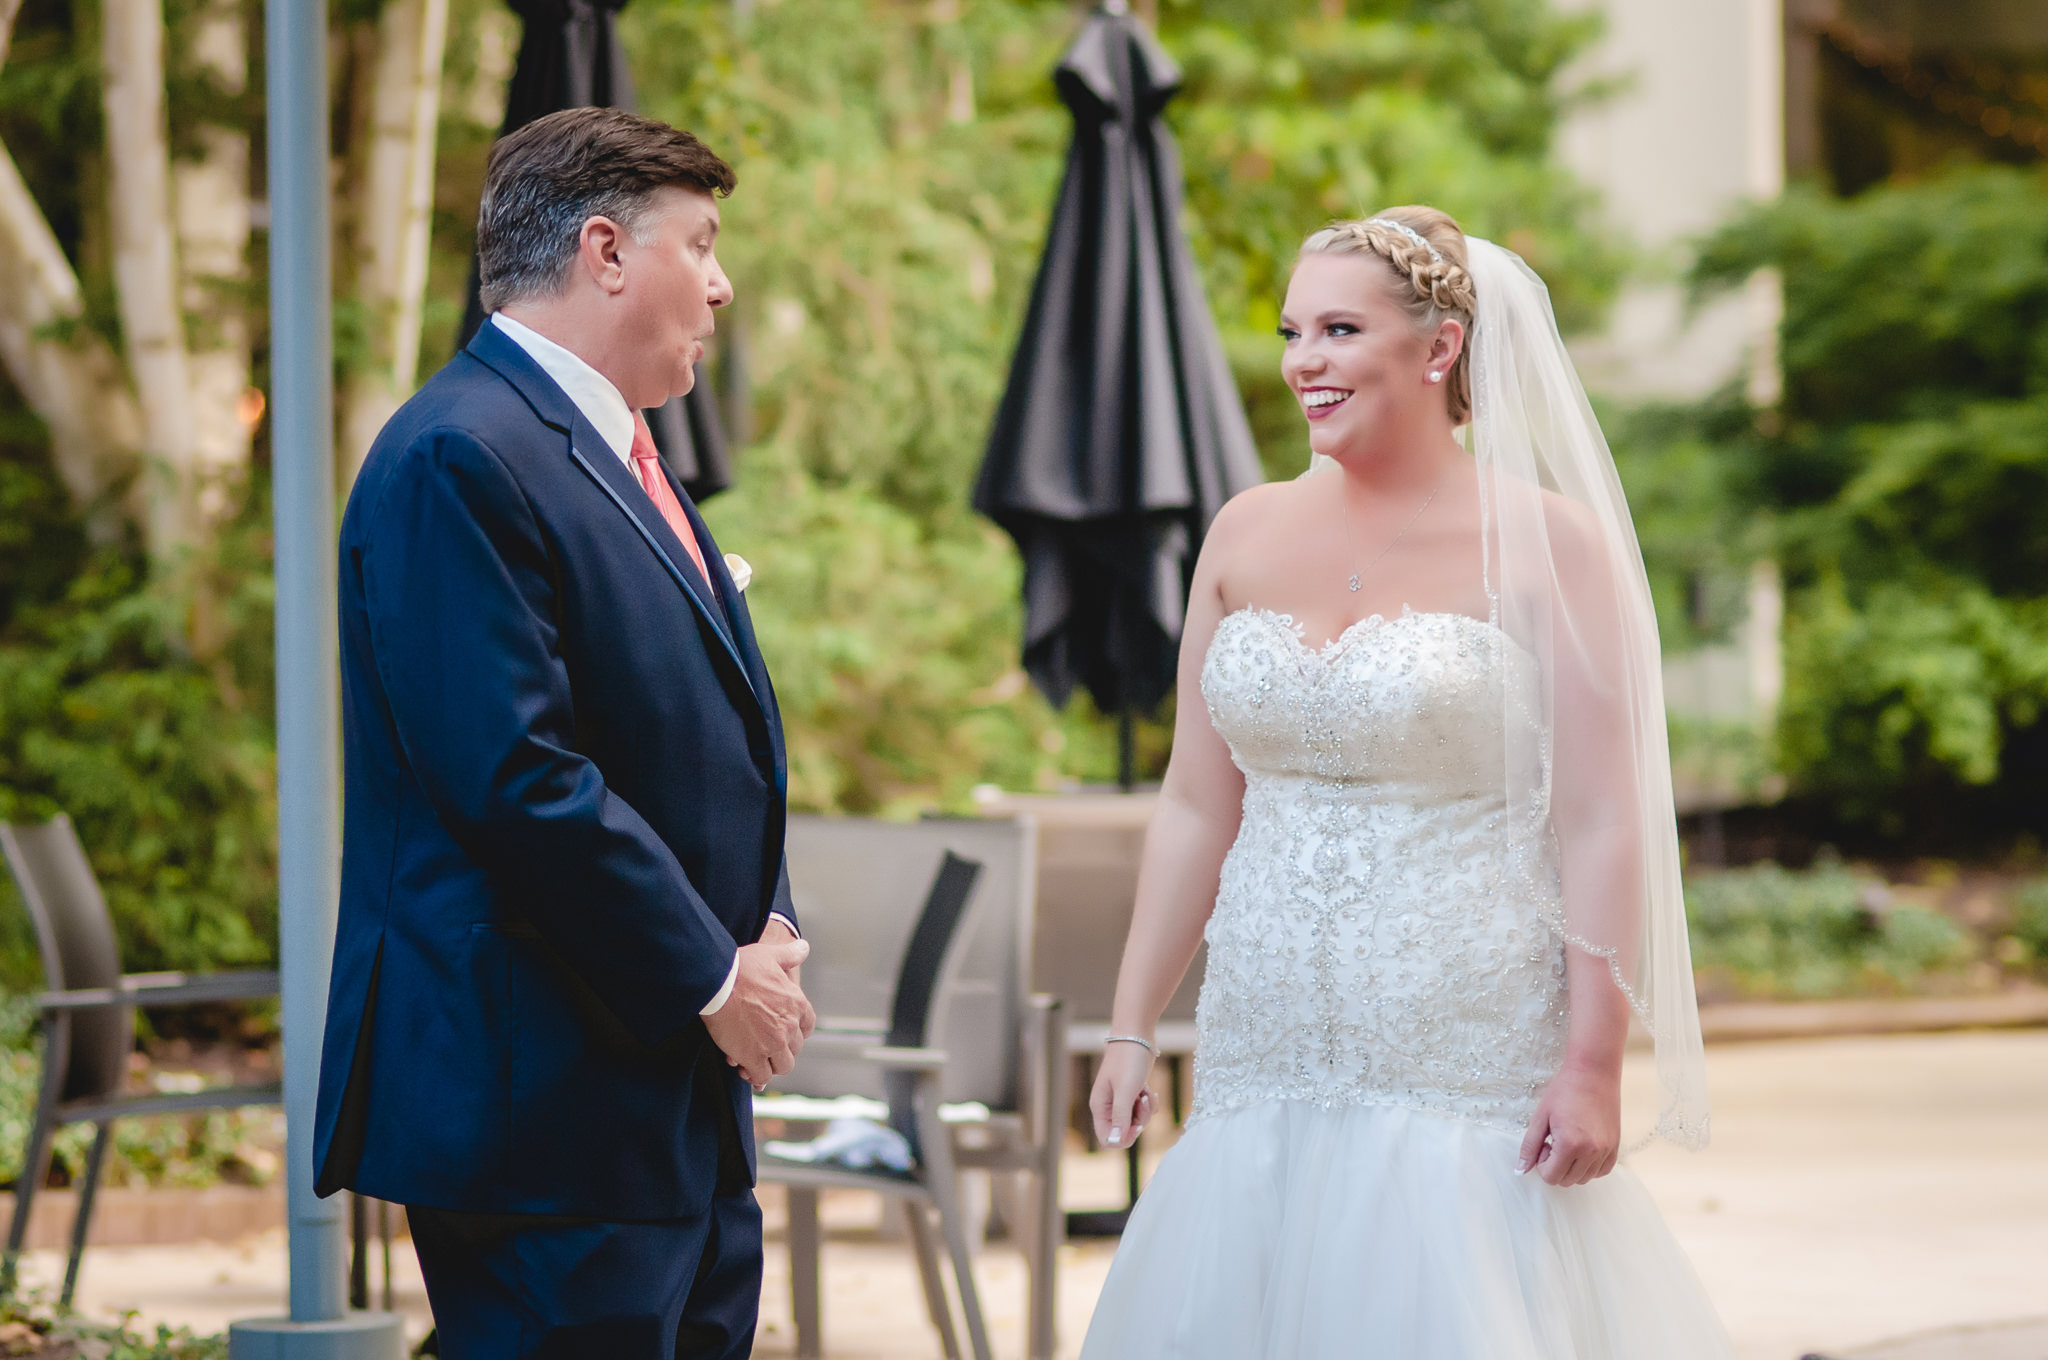 Father of the bride sees his daughter in her wedding attire for the first time